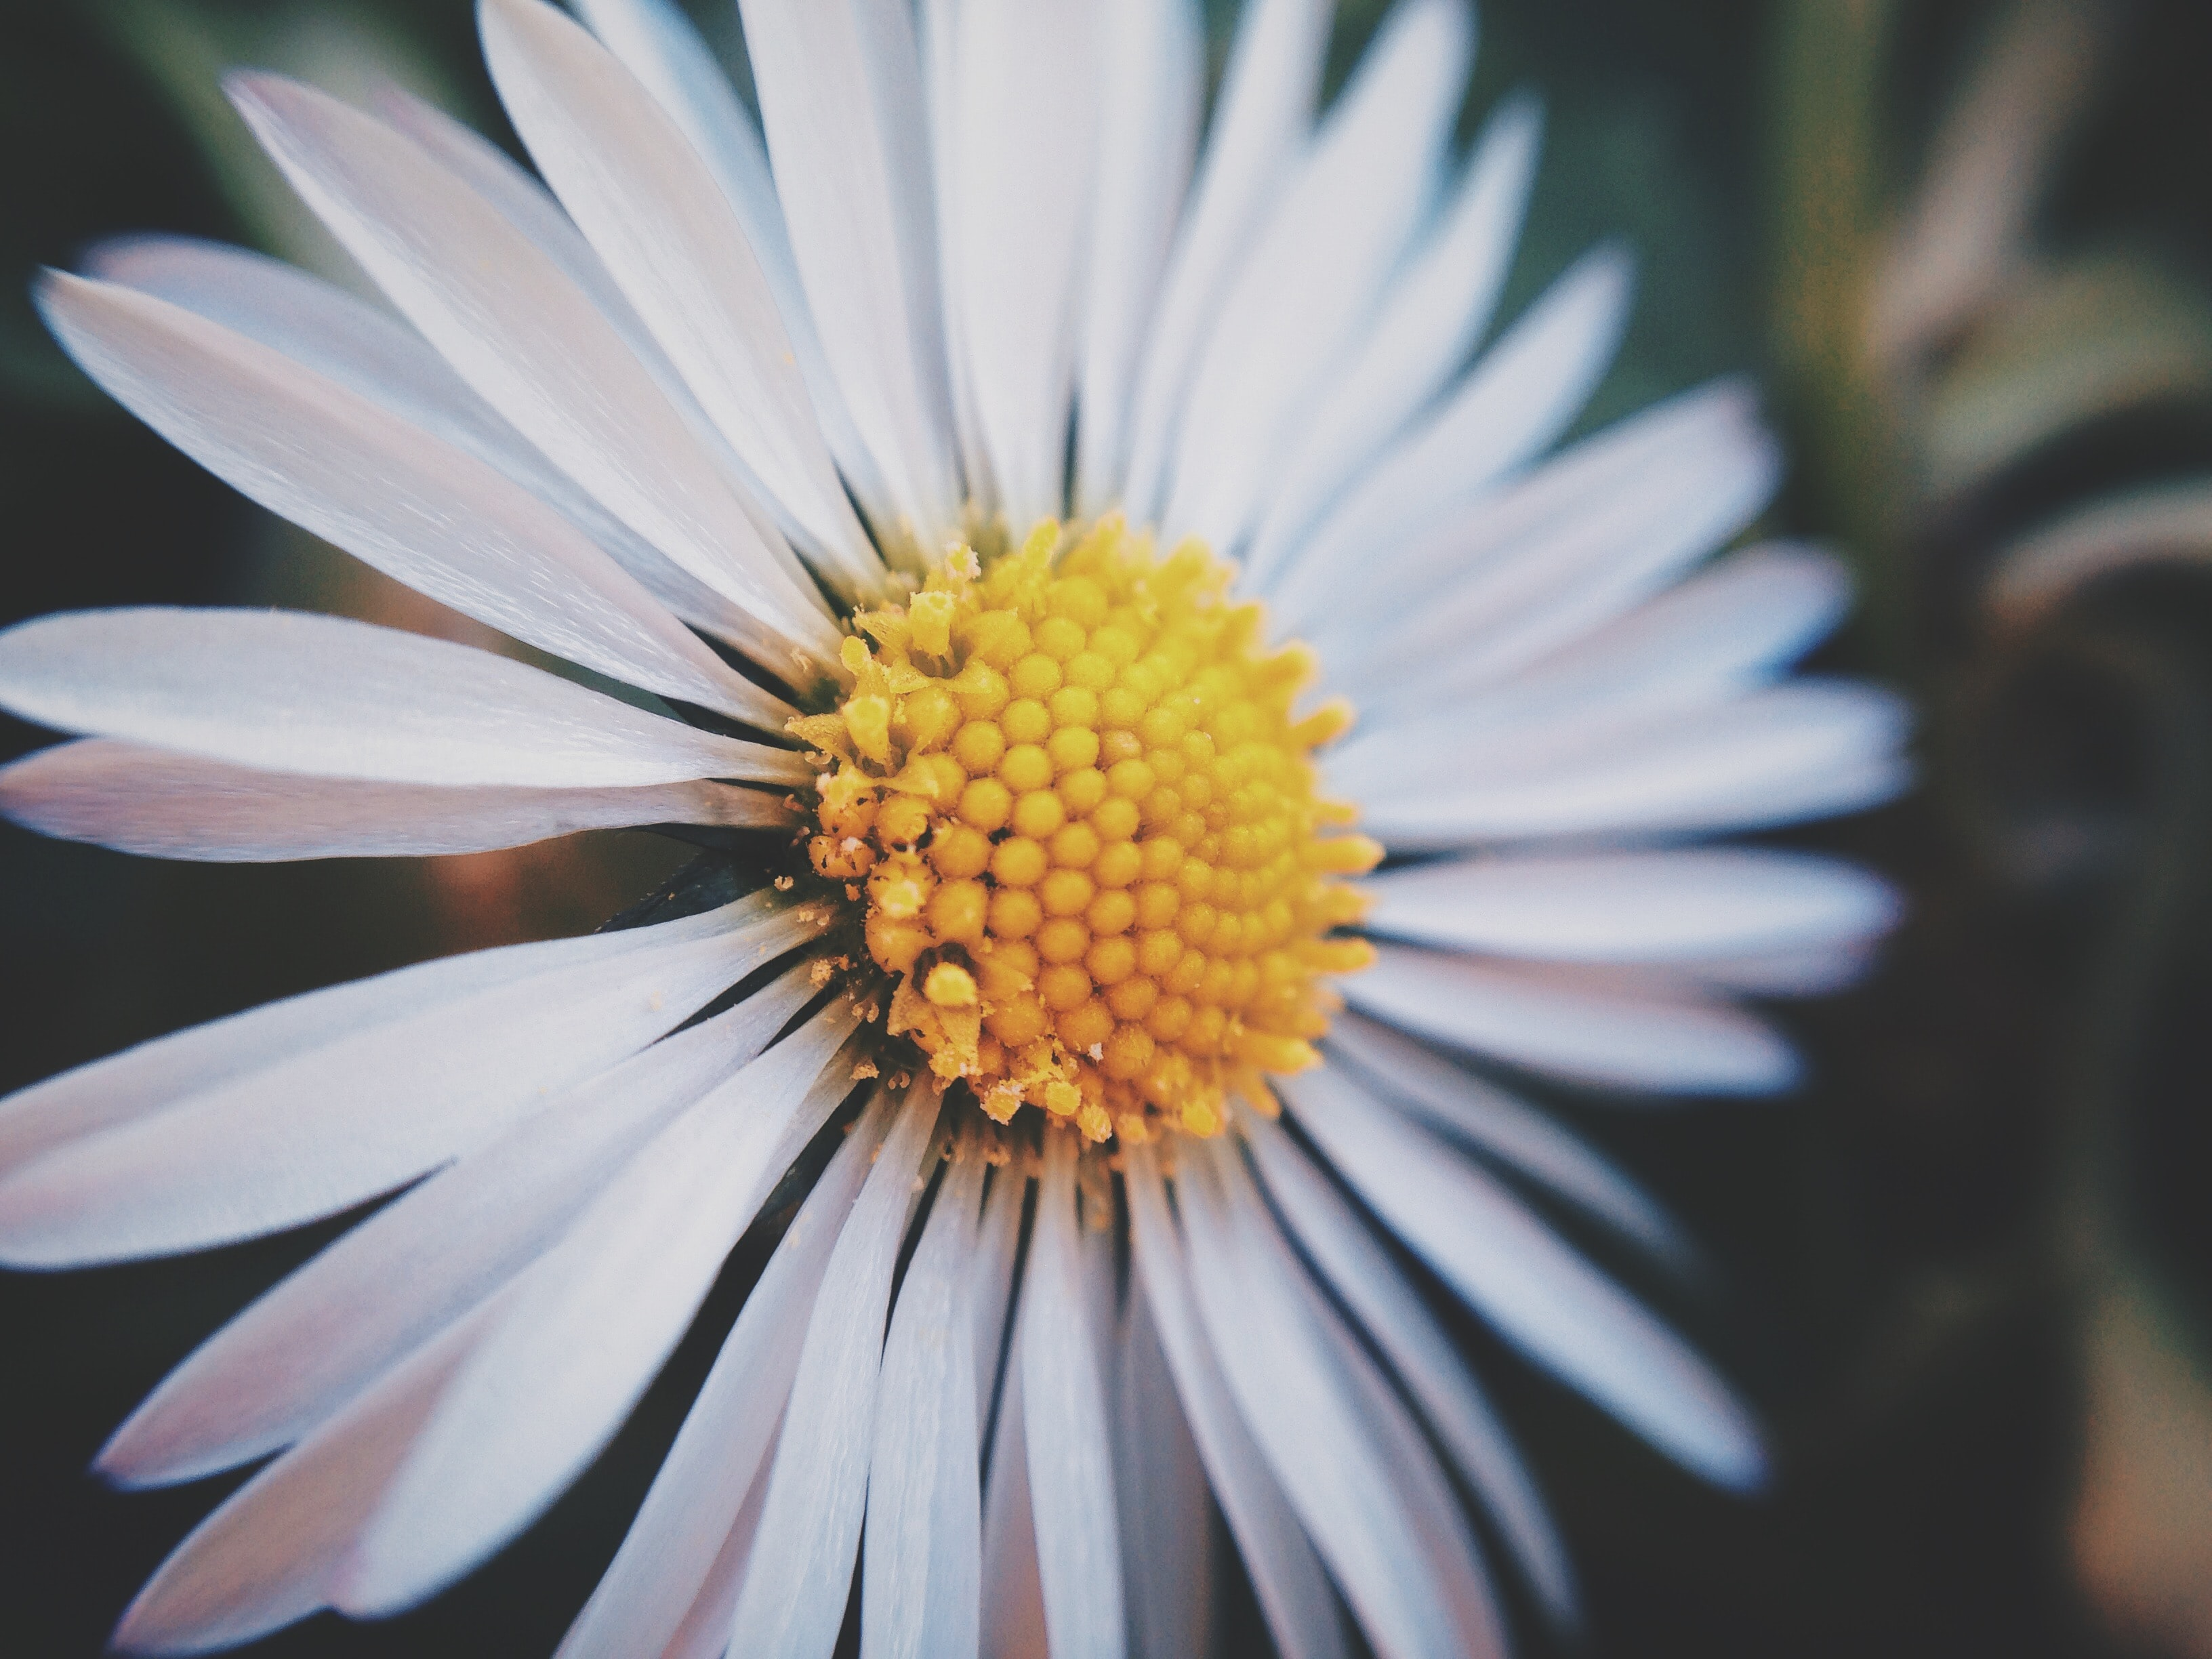 A macro shot of a white daisy flower with a yellow center